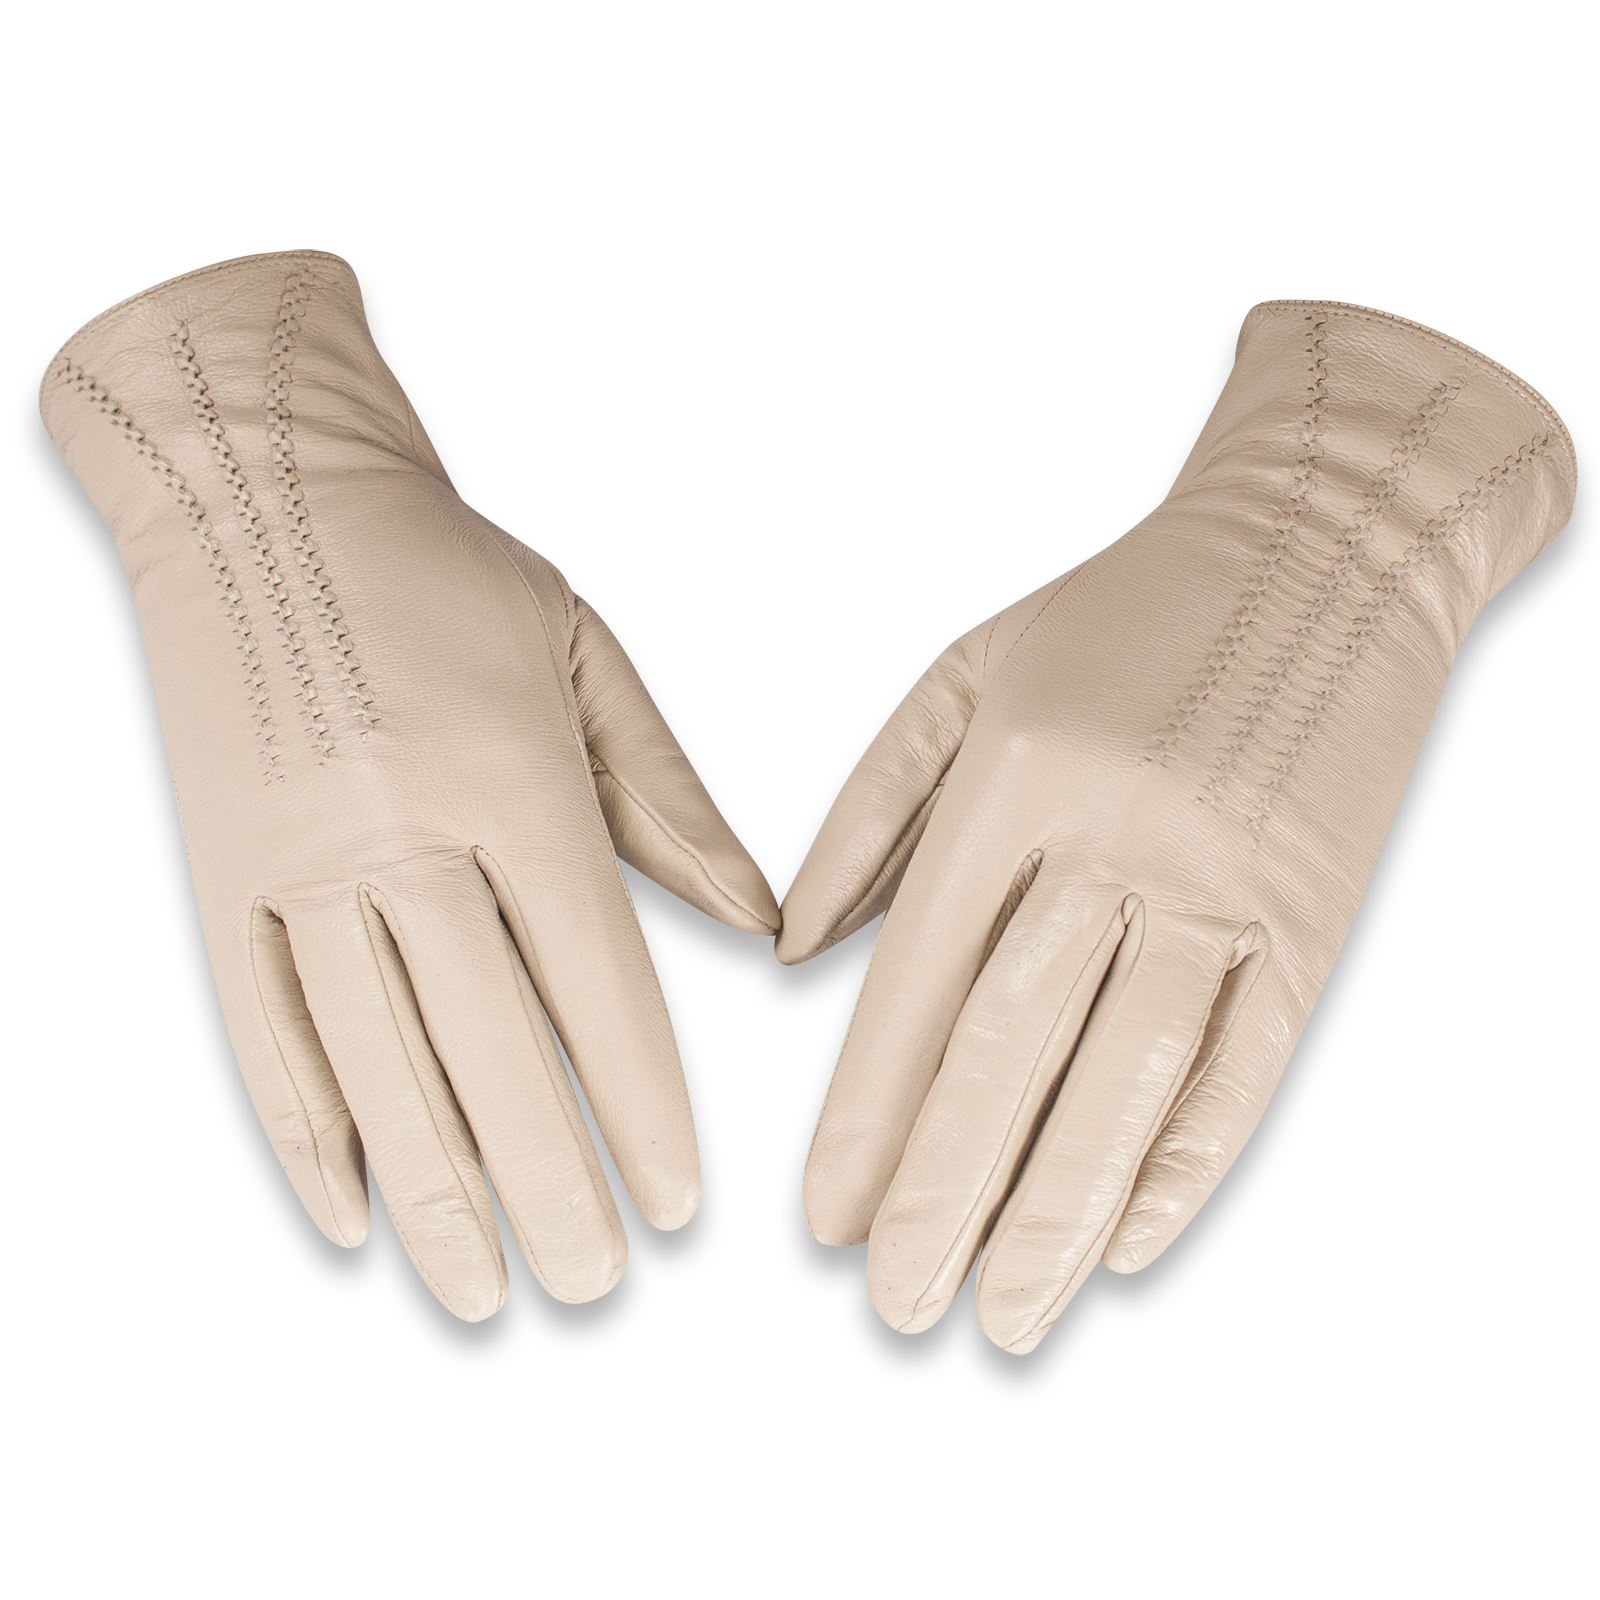 Shop work gloves in the jobsite safety section of tanzaniasafarisorvicos.ga Find quality work gloves online or in store.